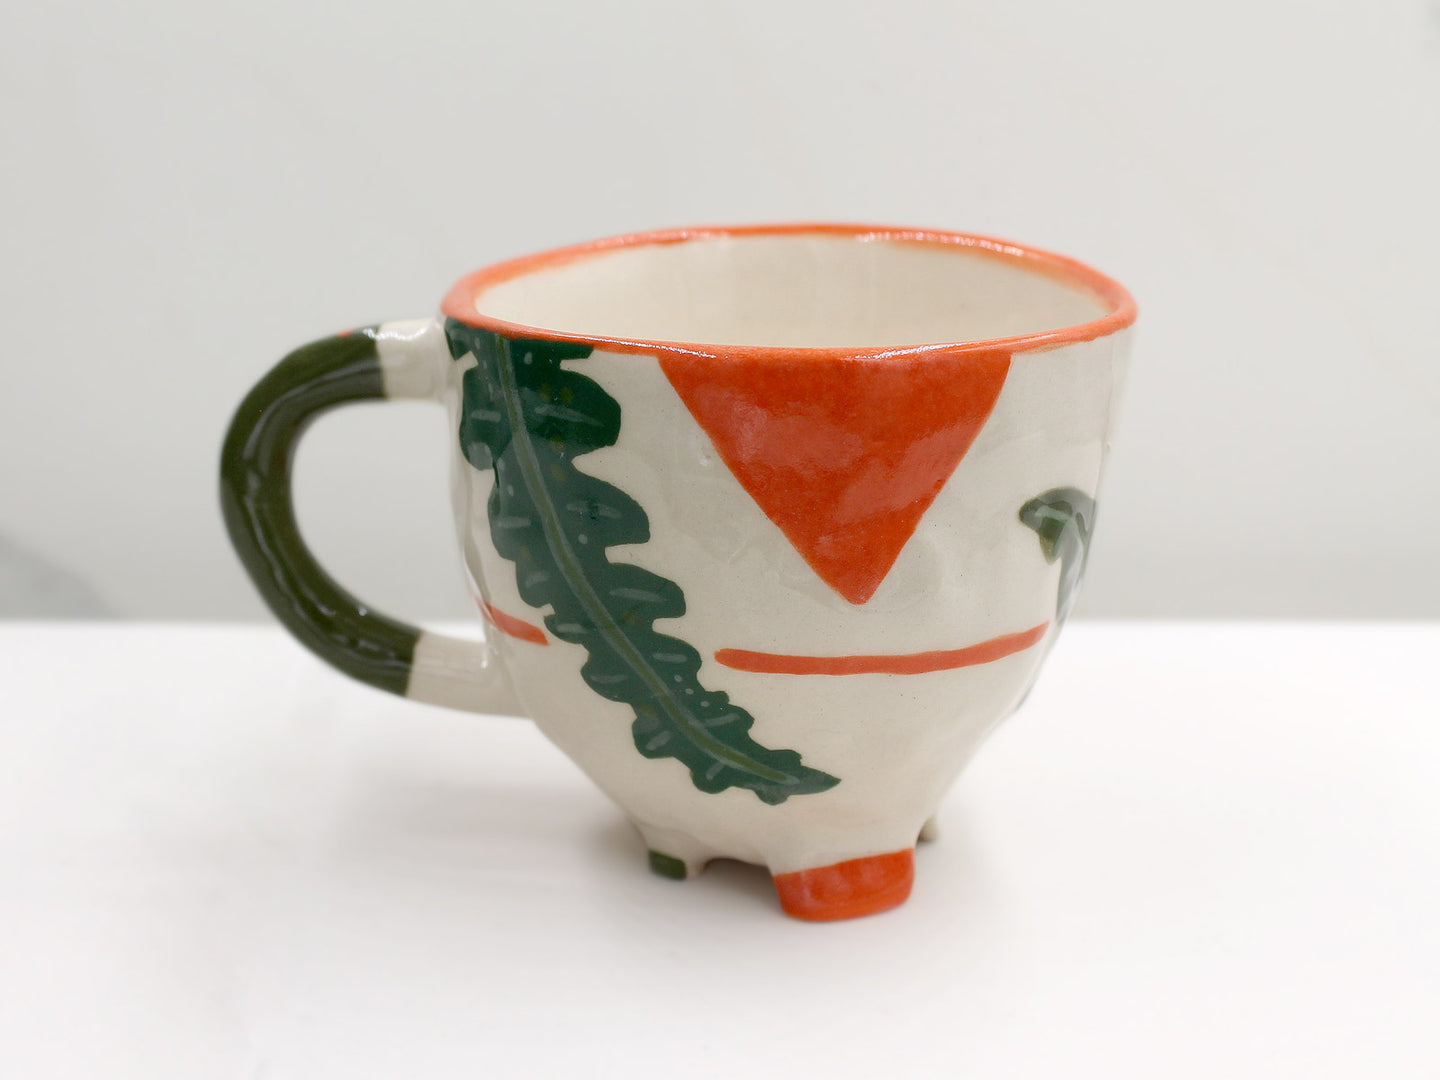 Palm and Triangle Mug with Olive Green Handle and Orange Detailing